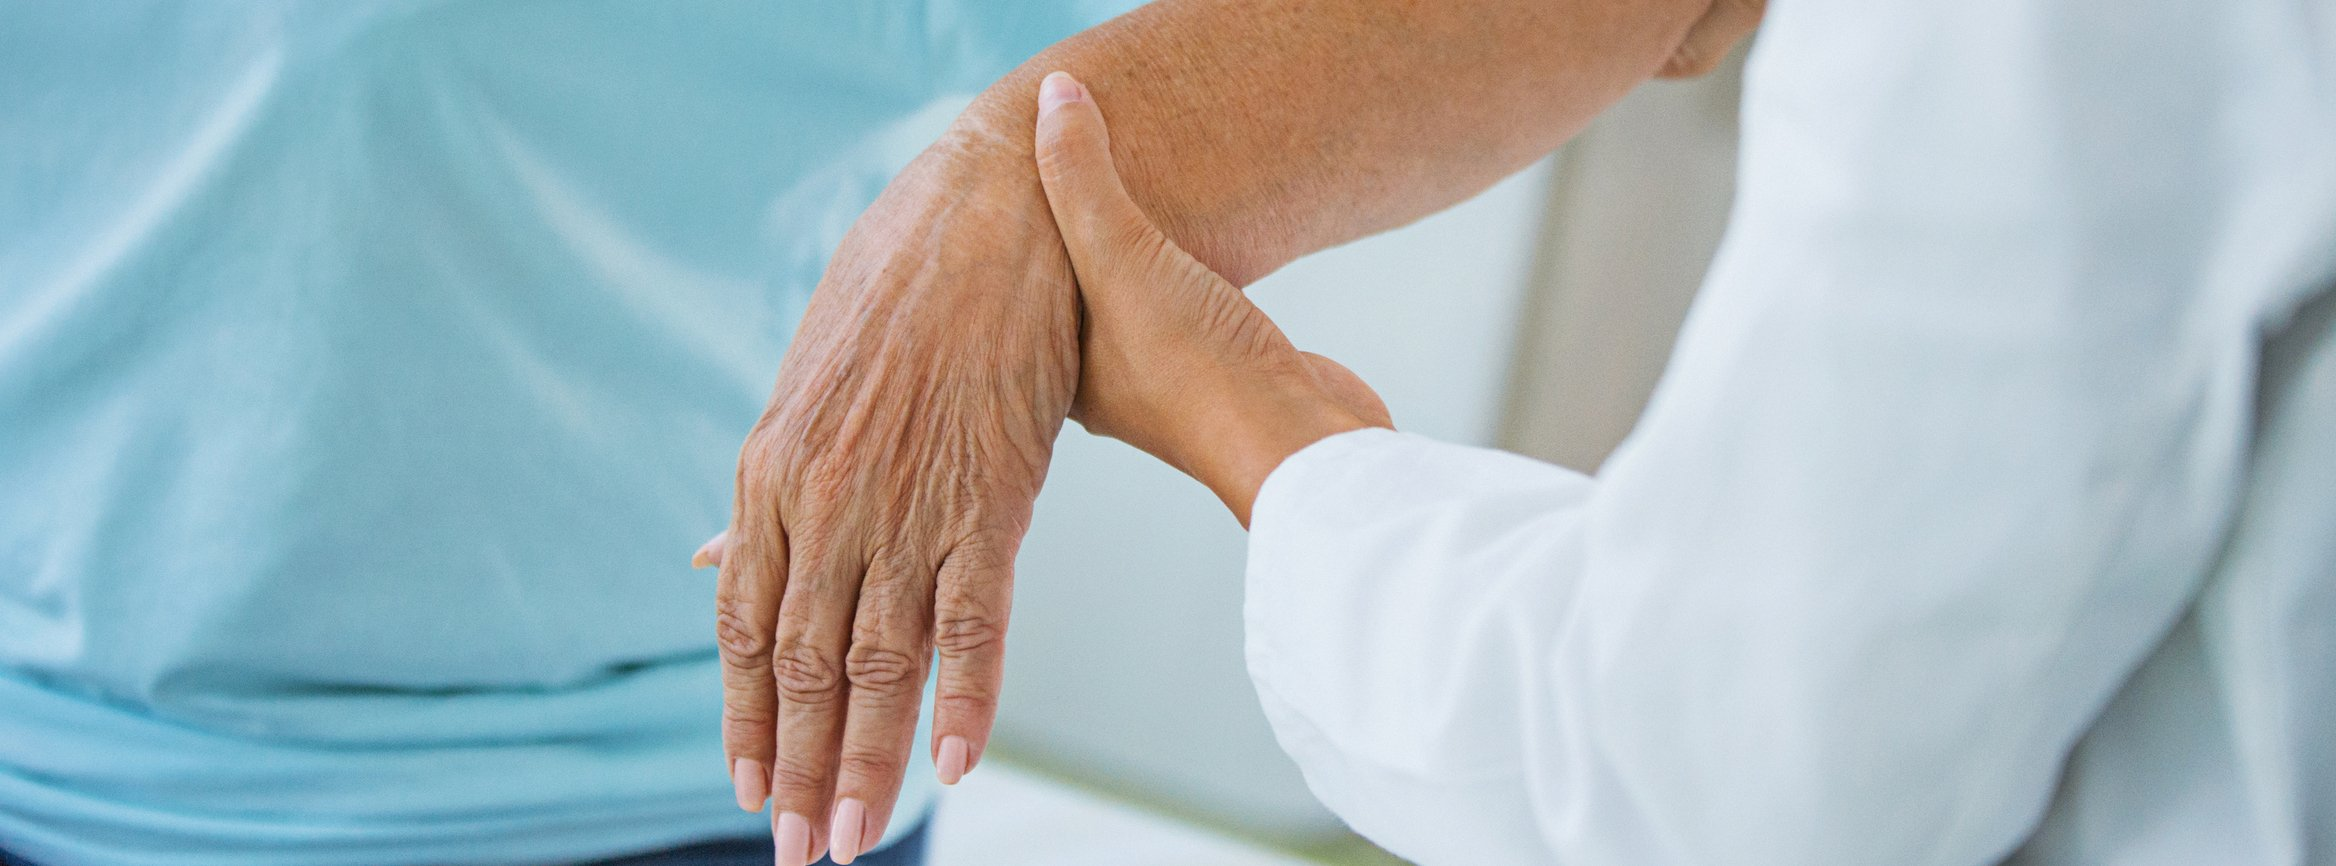 doctor holding patient wrist